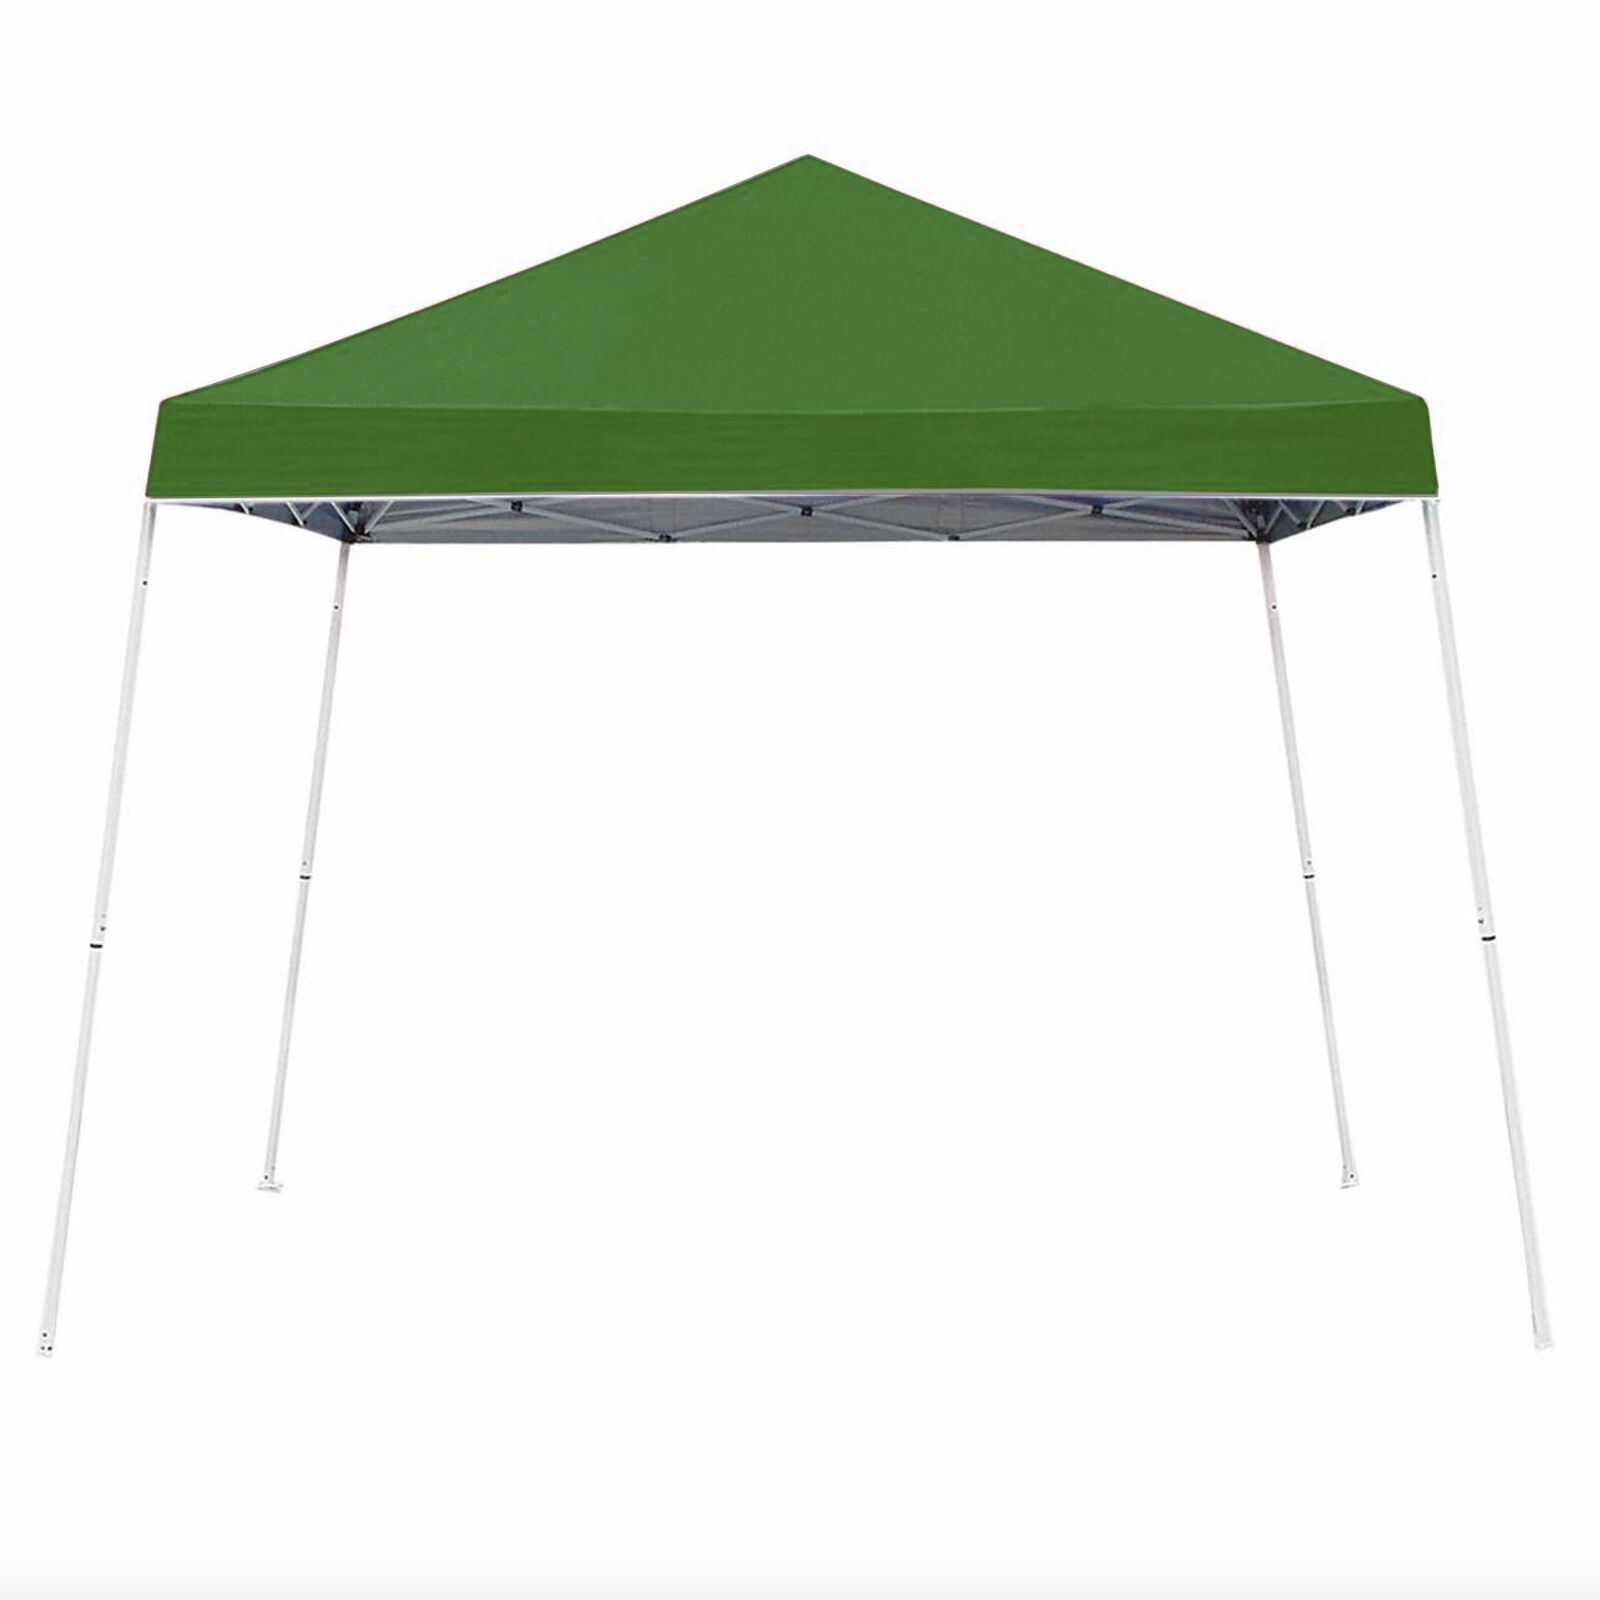 Z-Shade Instant 10 x 10 Foot  190D Taffeta Outdoor Canopy with Carry Bag, Green  free shipping